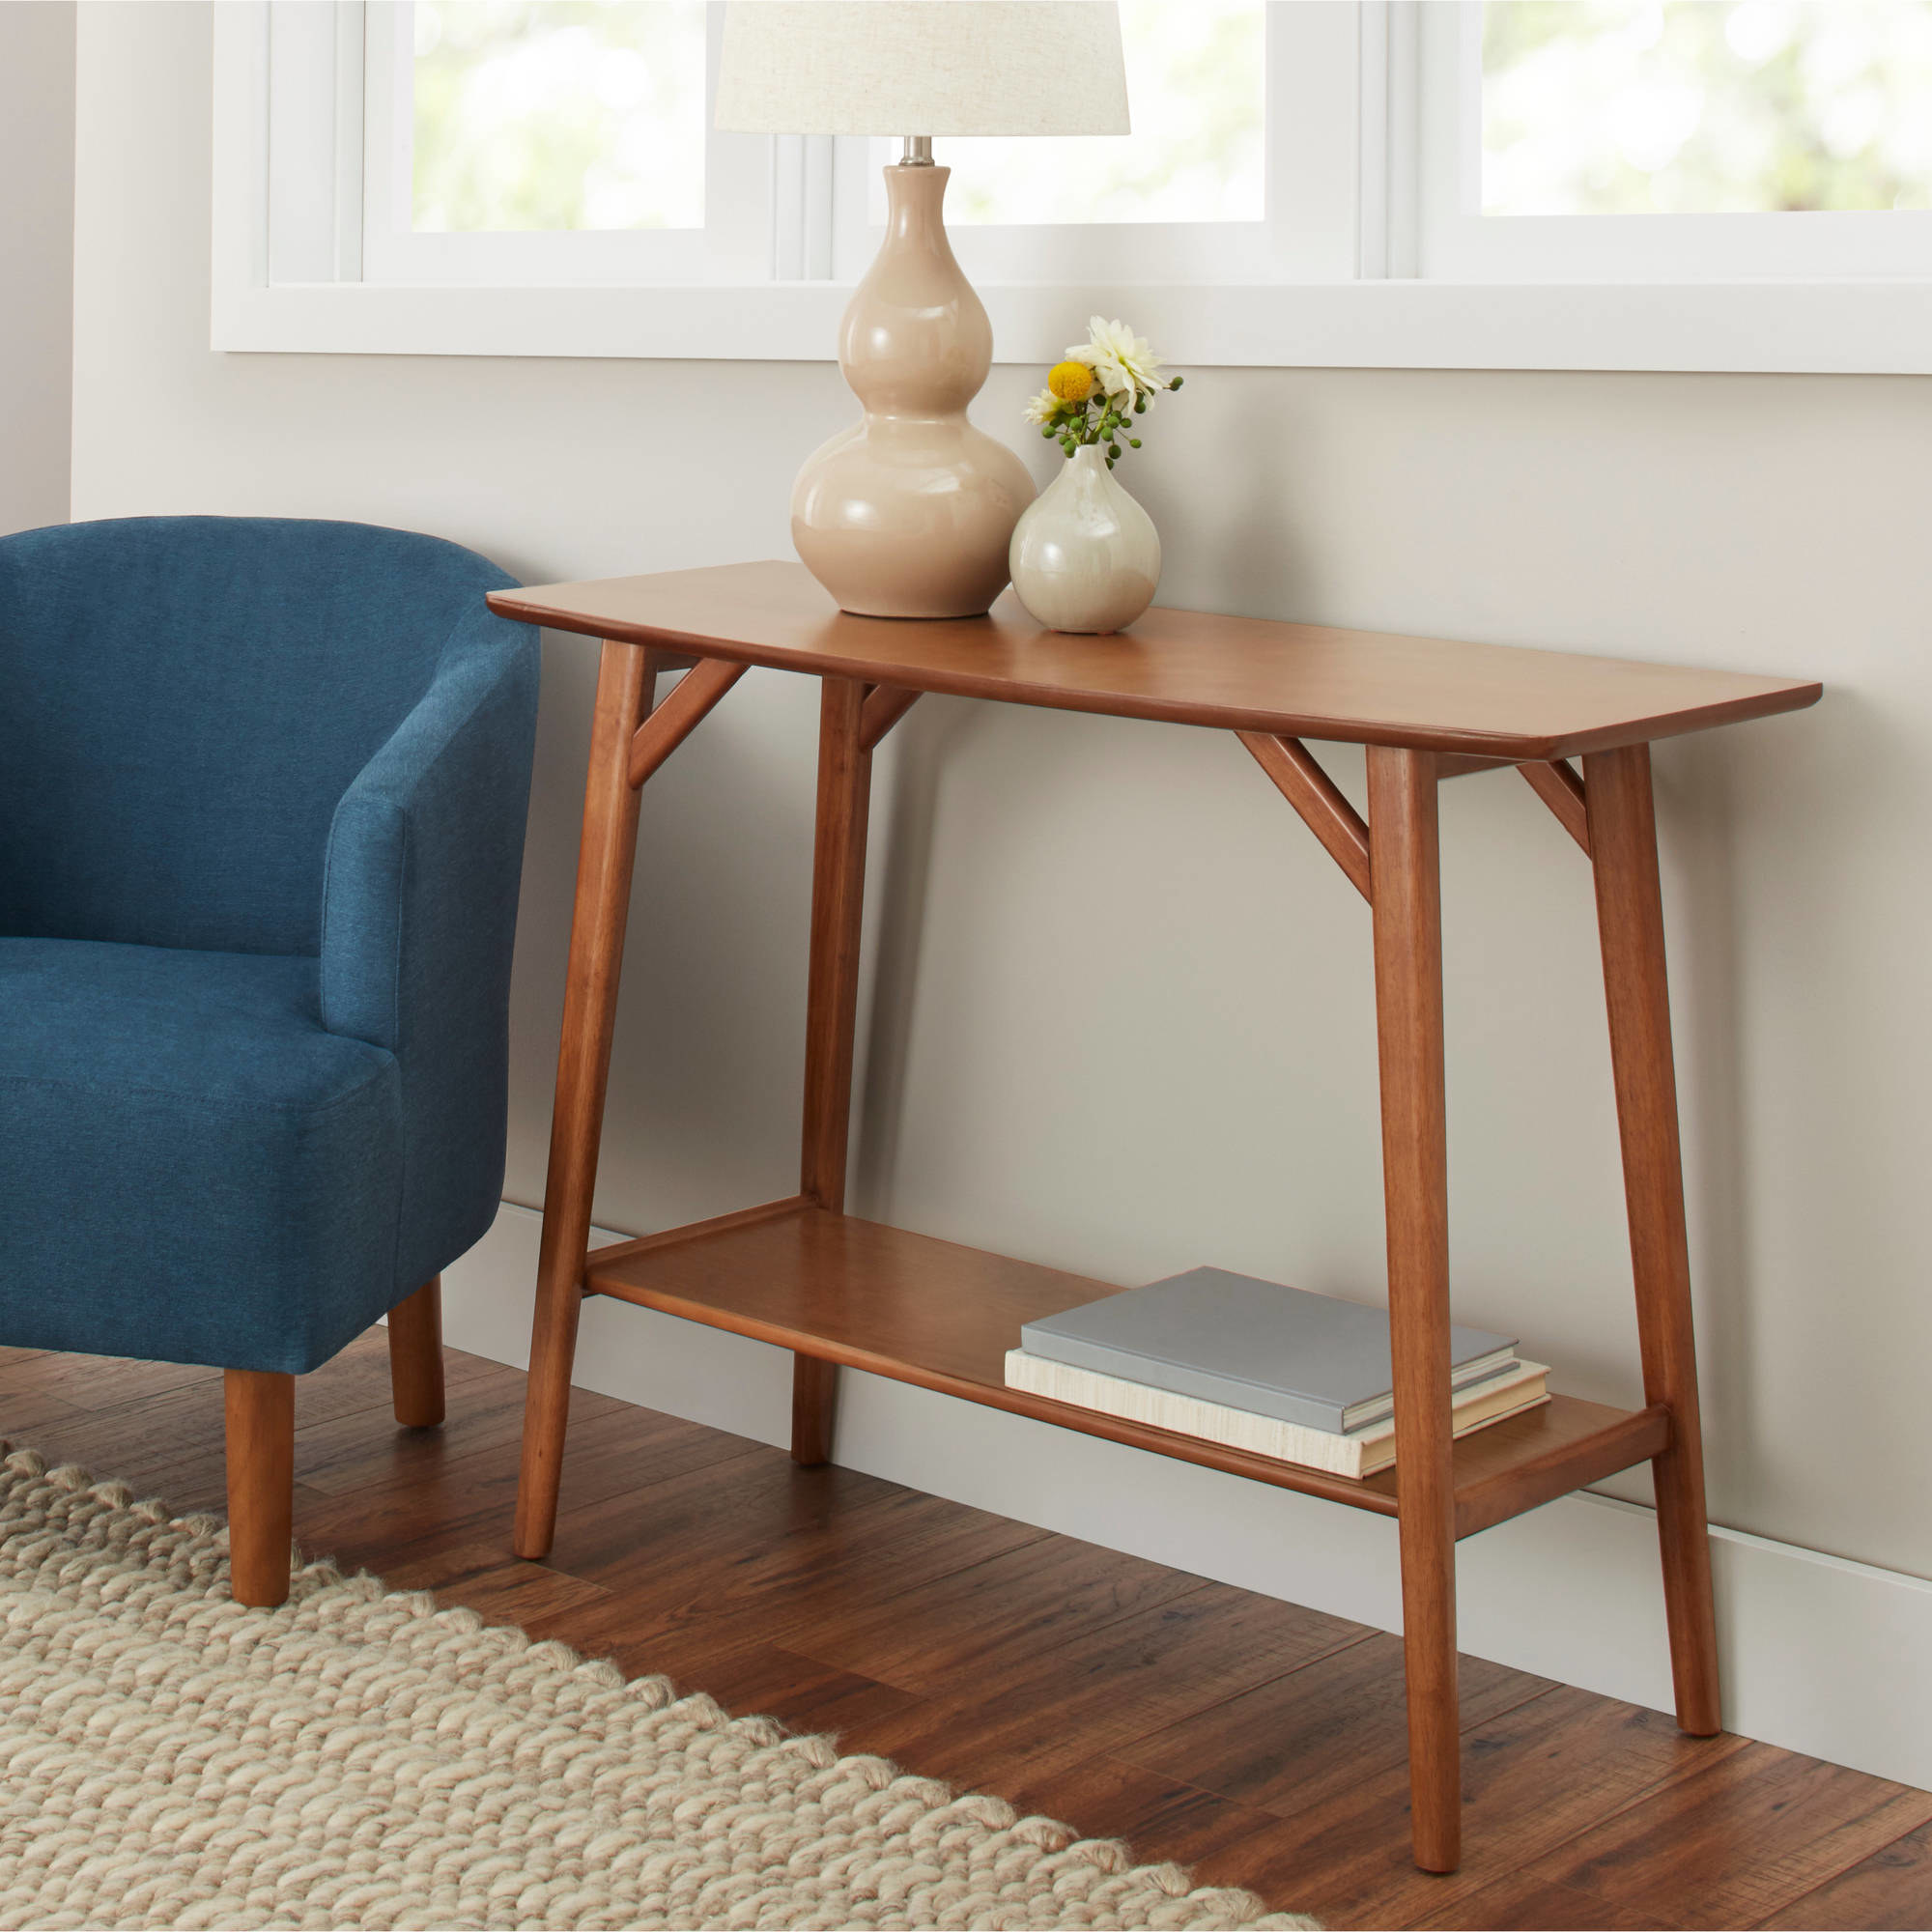 Brown thin table with books in warm living room